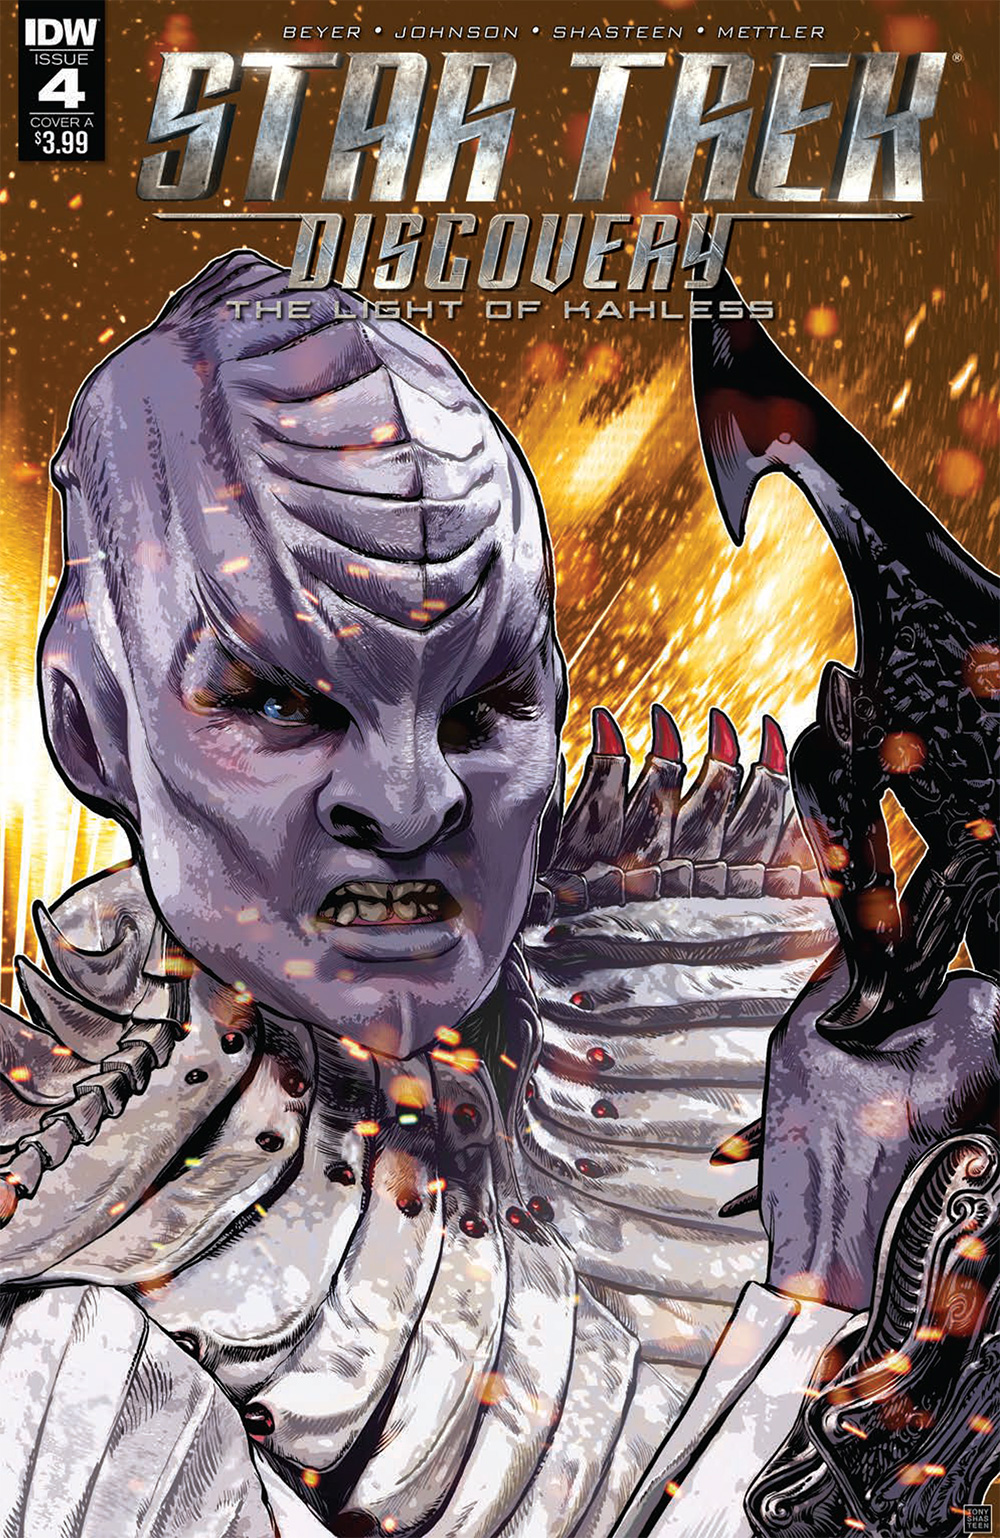 The Light of Kahless, Issue 4